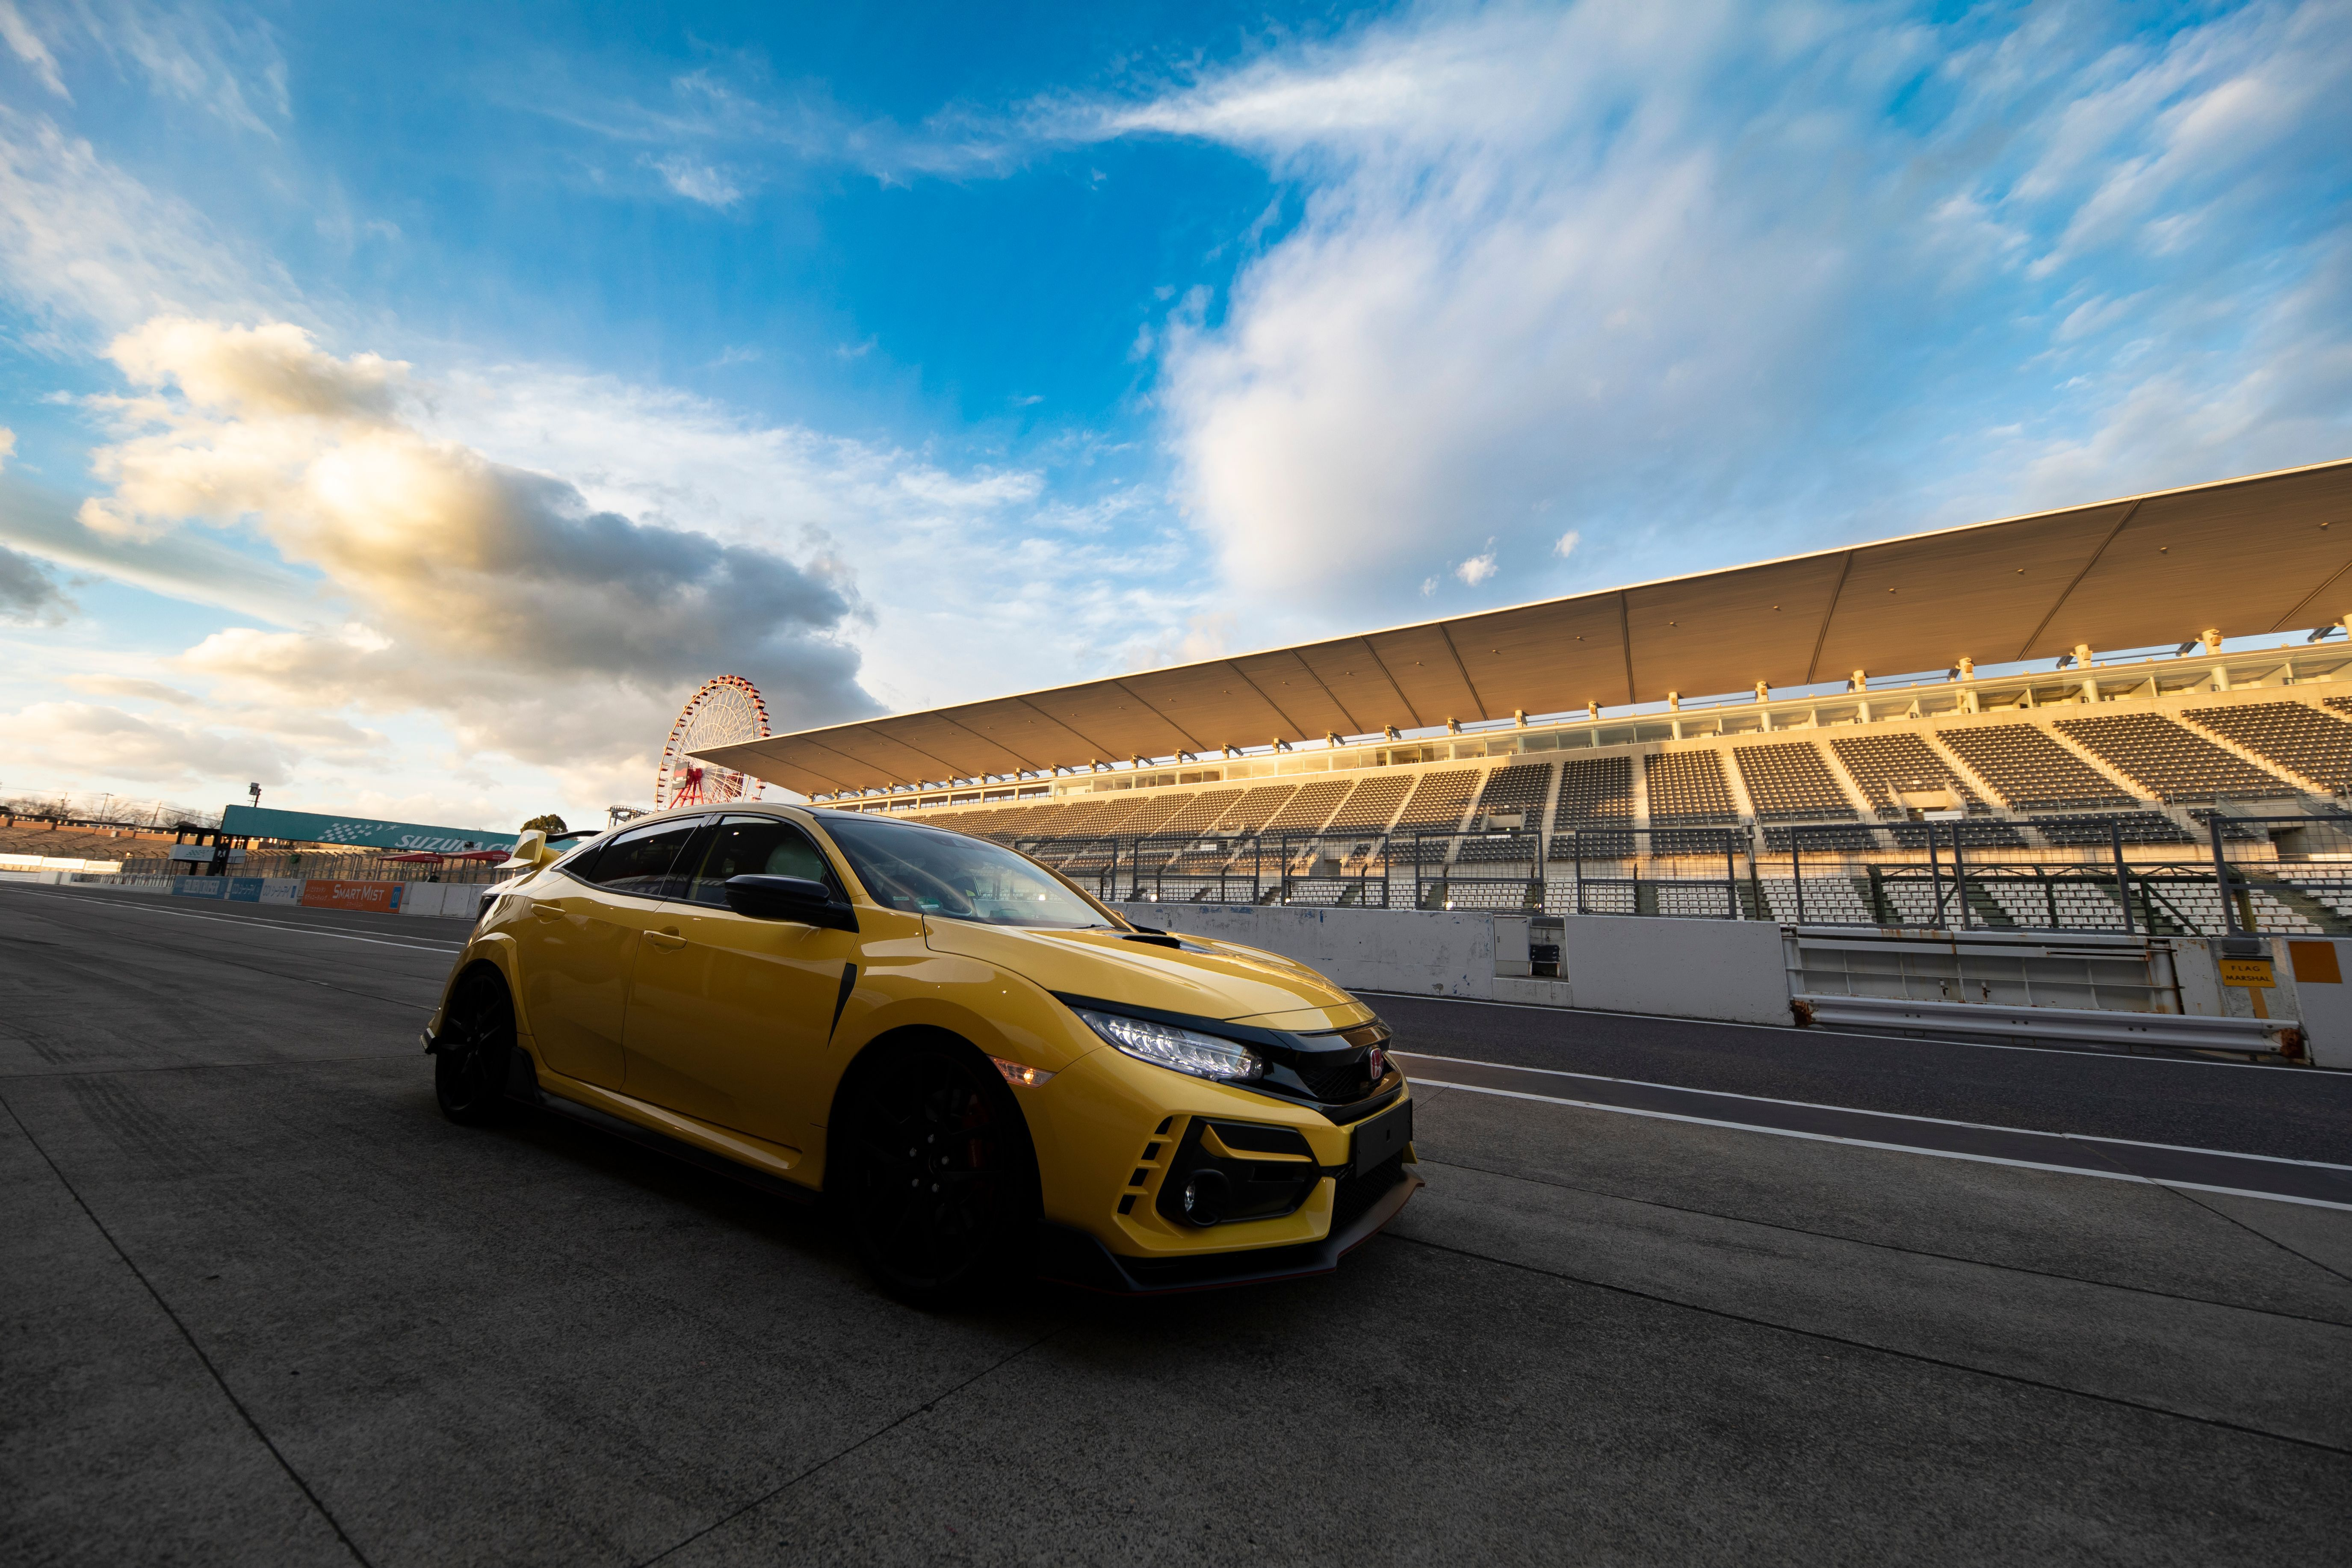 Honda Civic Type R limited edition driving on a race track